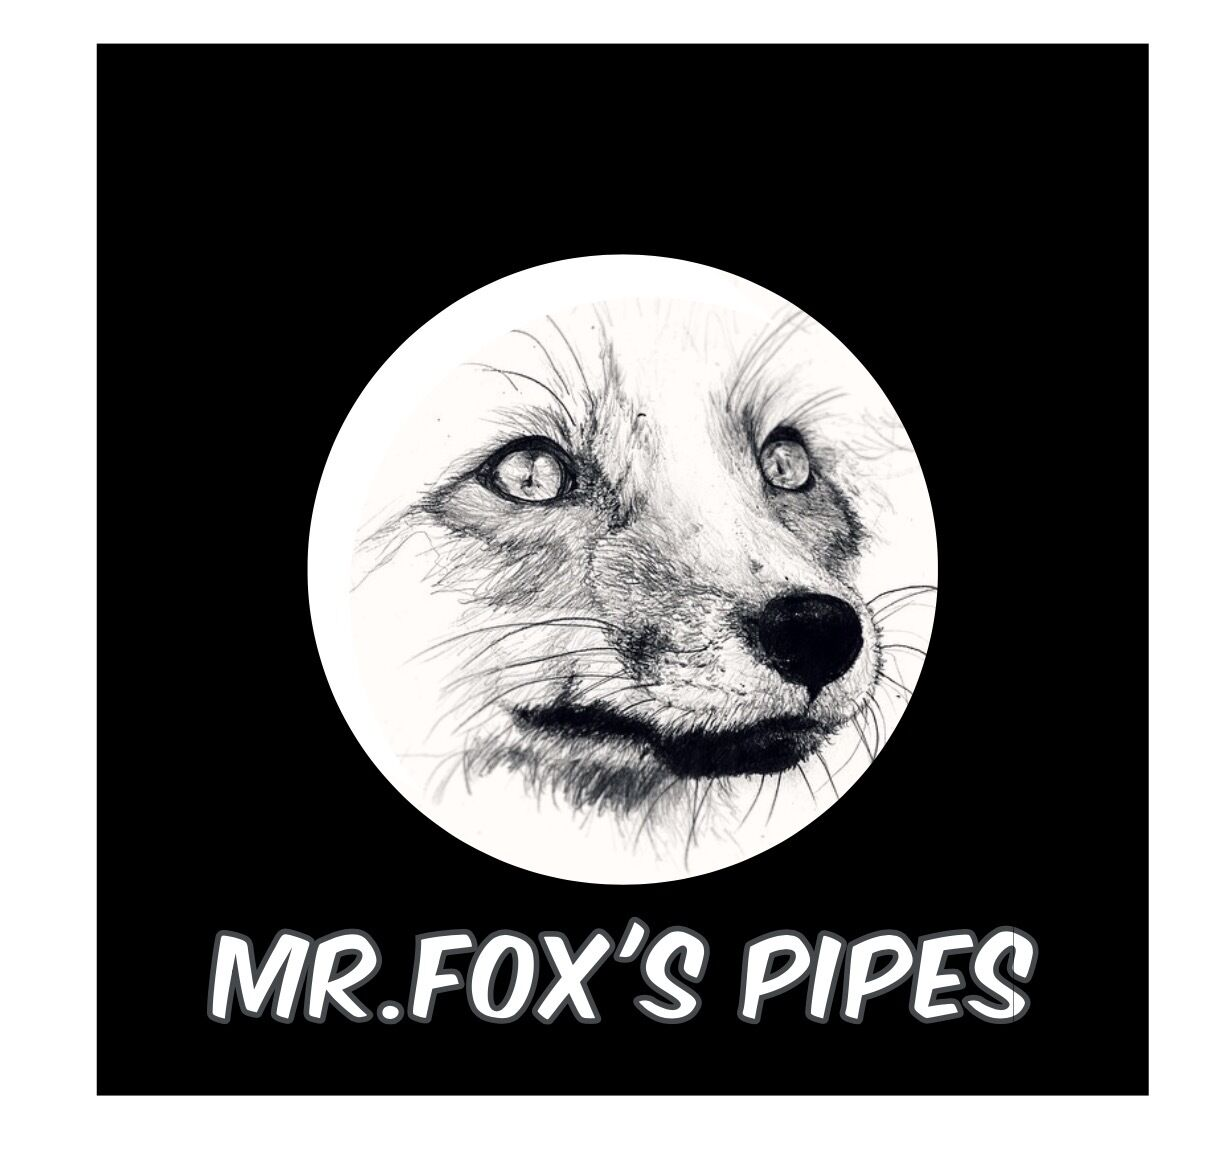 Mr.Fox's Pipes